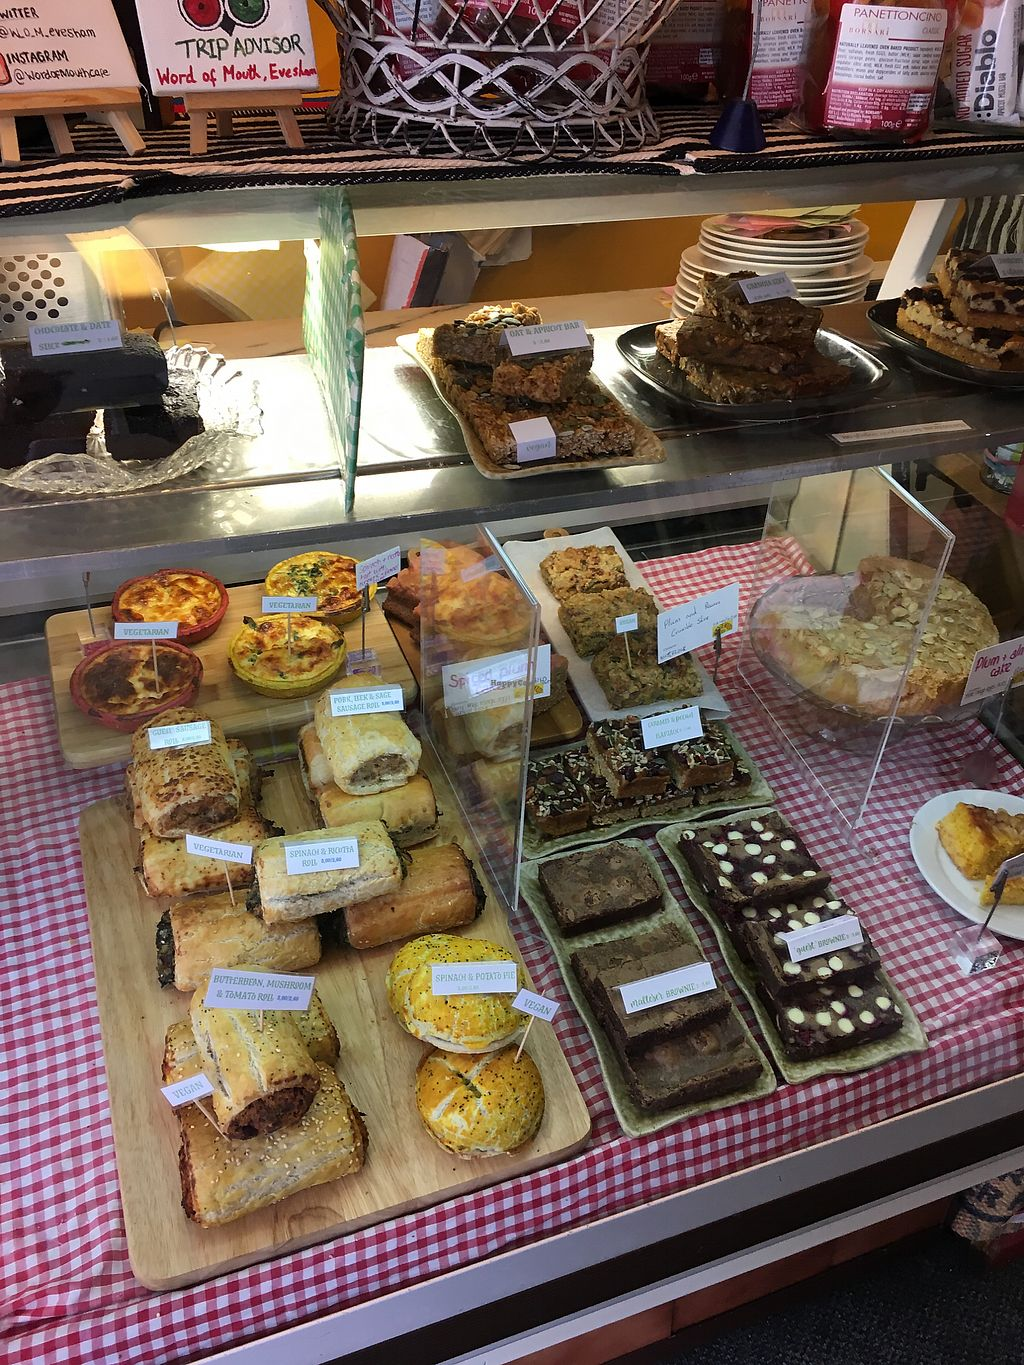 """Photo of CLOSED: Word of Mouth  by <a href=""""/members/profile/Spaghetti_monster"""">Spaghetti_monster</a> <br/>pies and cakes  <br/> August 18, 2017  - <a href='/contact/abuse/image/62924/293962'>Report</a>"""